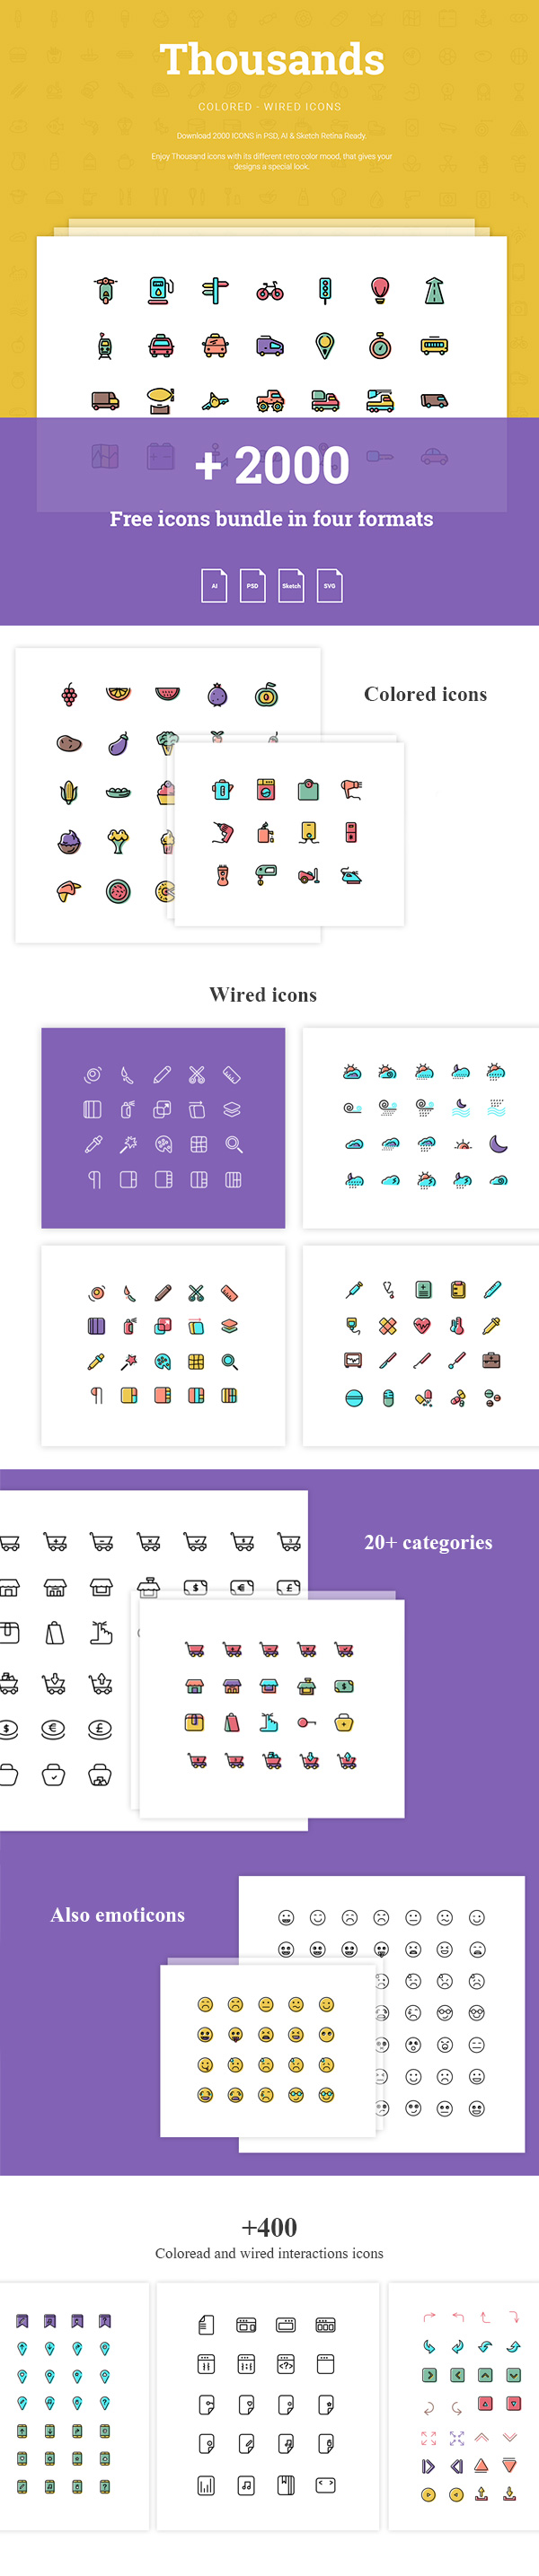 thousands-icons-600